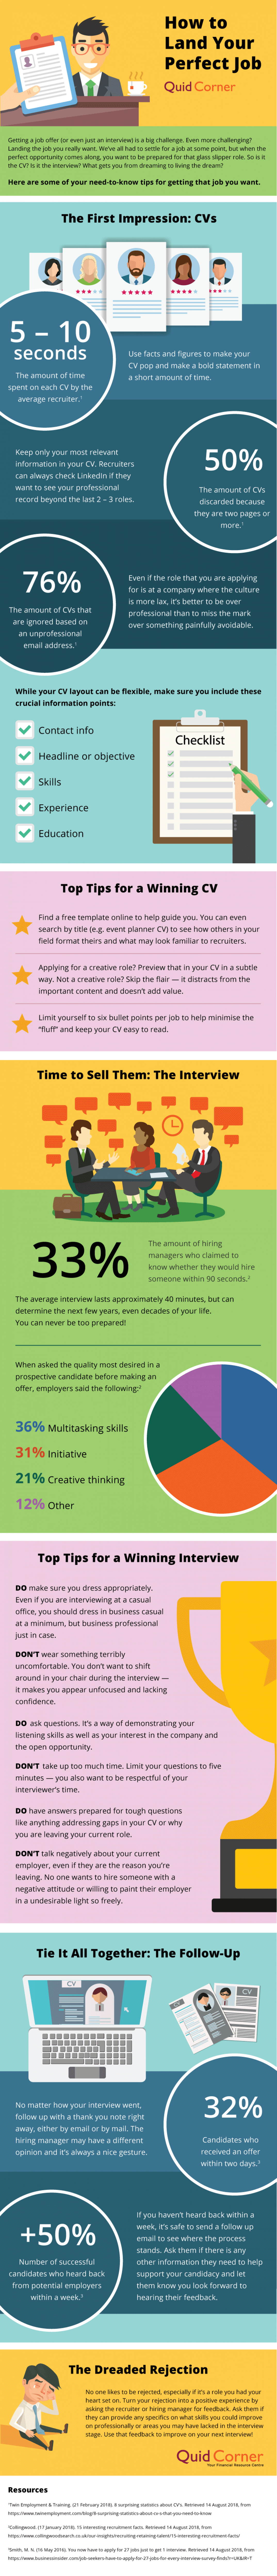 How to Get the Job You Want: Building Your CV and More Infographic